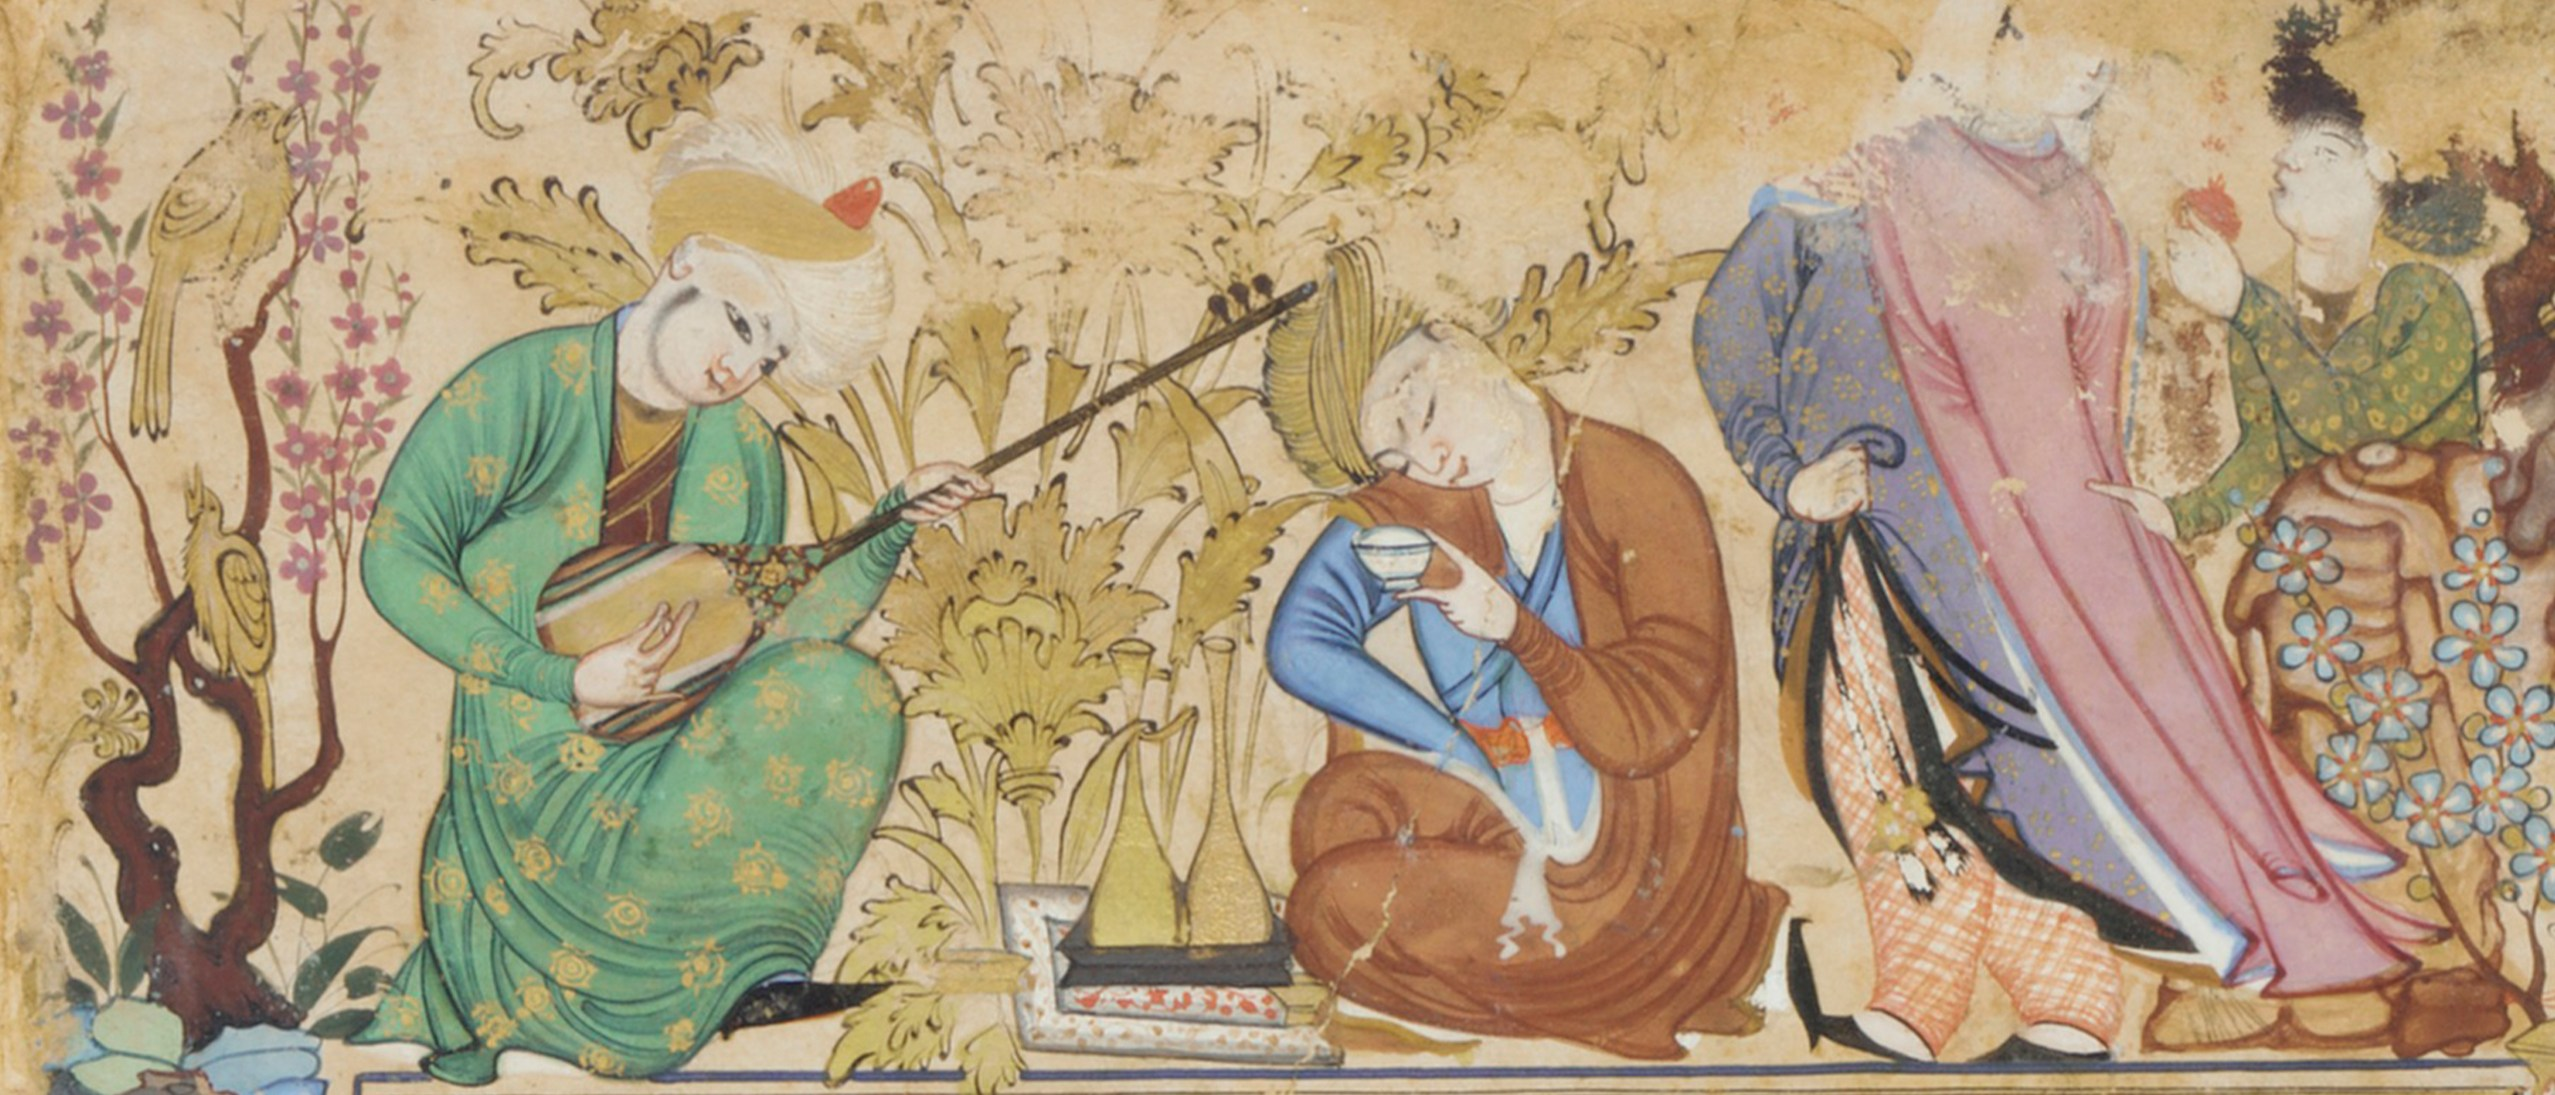 This image of a setar player appears in a painting that was created around 1600 in present-day Uzbekistan. The musician performs for a companion who is drinking a cup of wine. Detail, album folio, A Seated Princess (Right-Hand Half of a Double-Page Composition), painting attributed to Muhammad-Sharif Musawwir, borders signed by Muhammad Murad Samarqandi; ca. 1600; opaque watercolor and gold on paper; origin: possibly Bukhara, Uzbekistan. Purchase--Smithsonian Unrestricted Trust Funds, Smithsonian Collections Acquisition Program, and Dr. Arthur M. Sackler. S1986.304